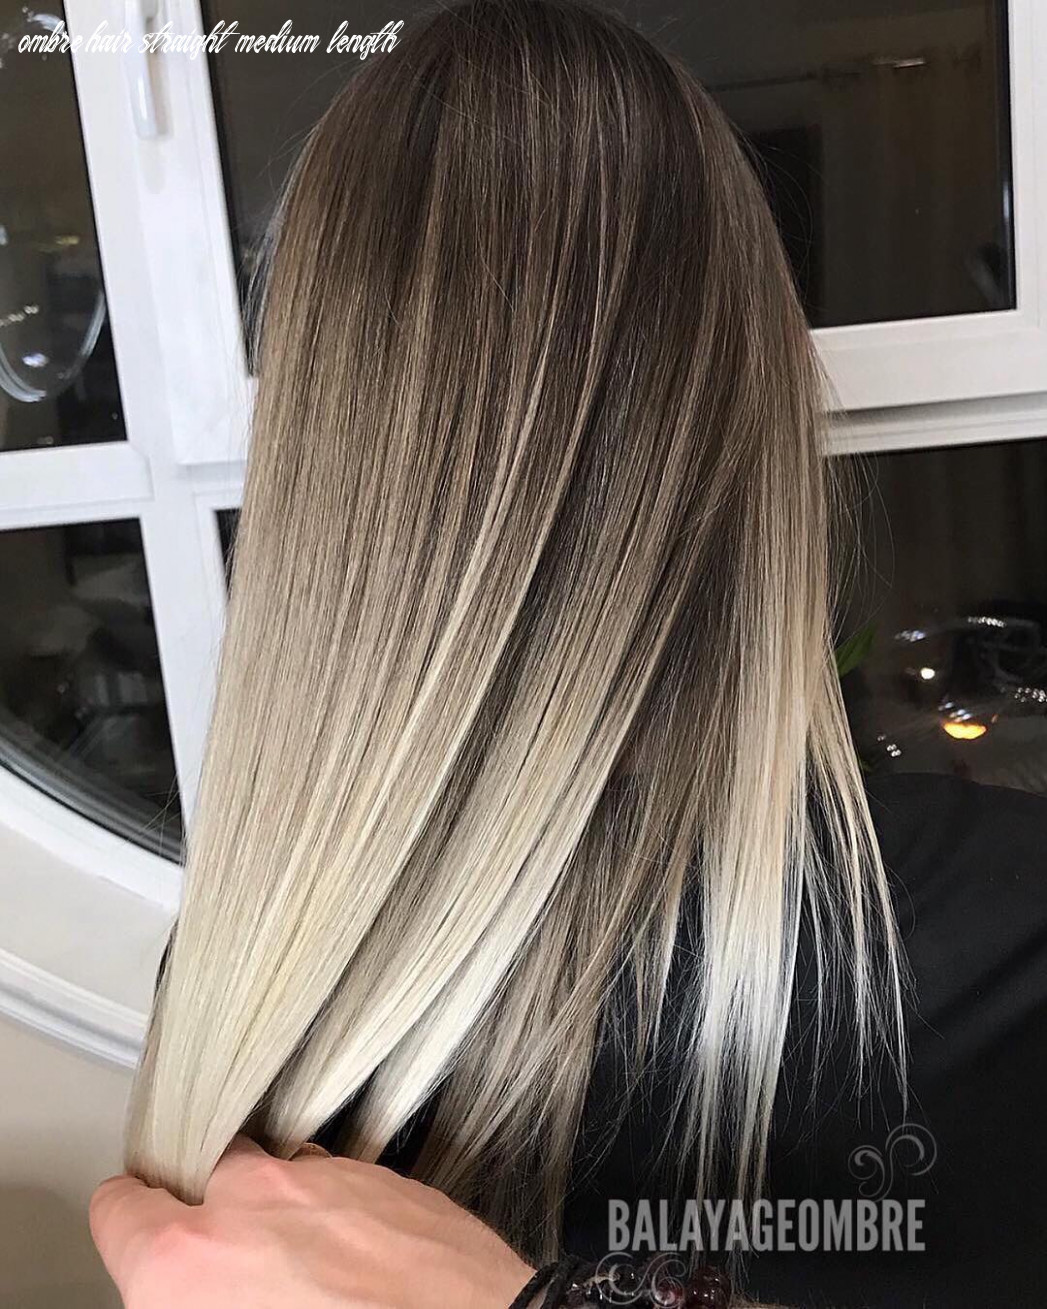 12 ombre balayage hairstyles for medium length hair, hair color 12 ombre hair straight medium length